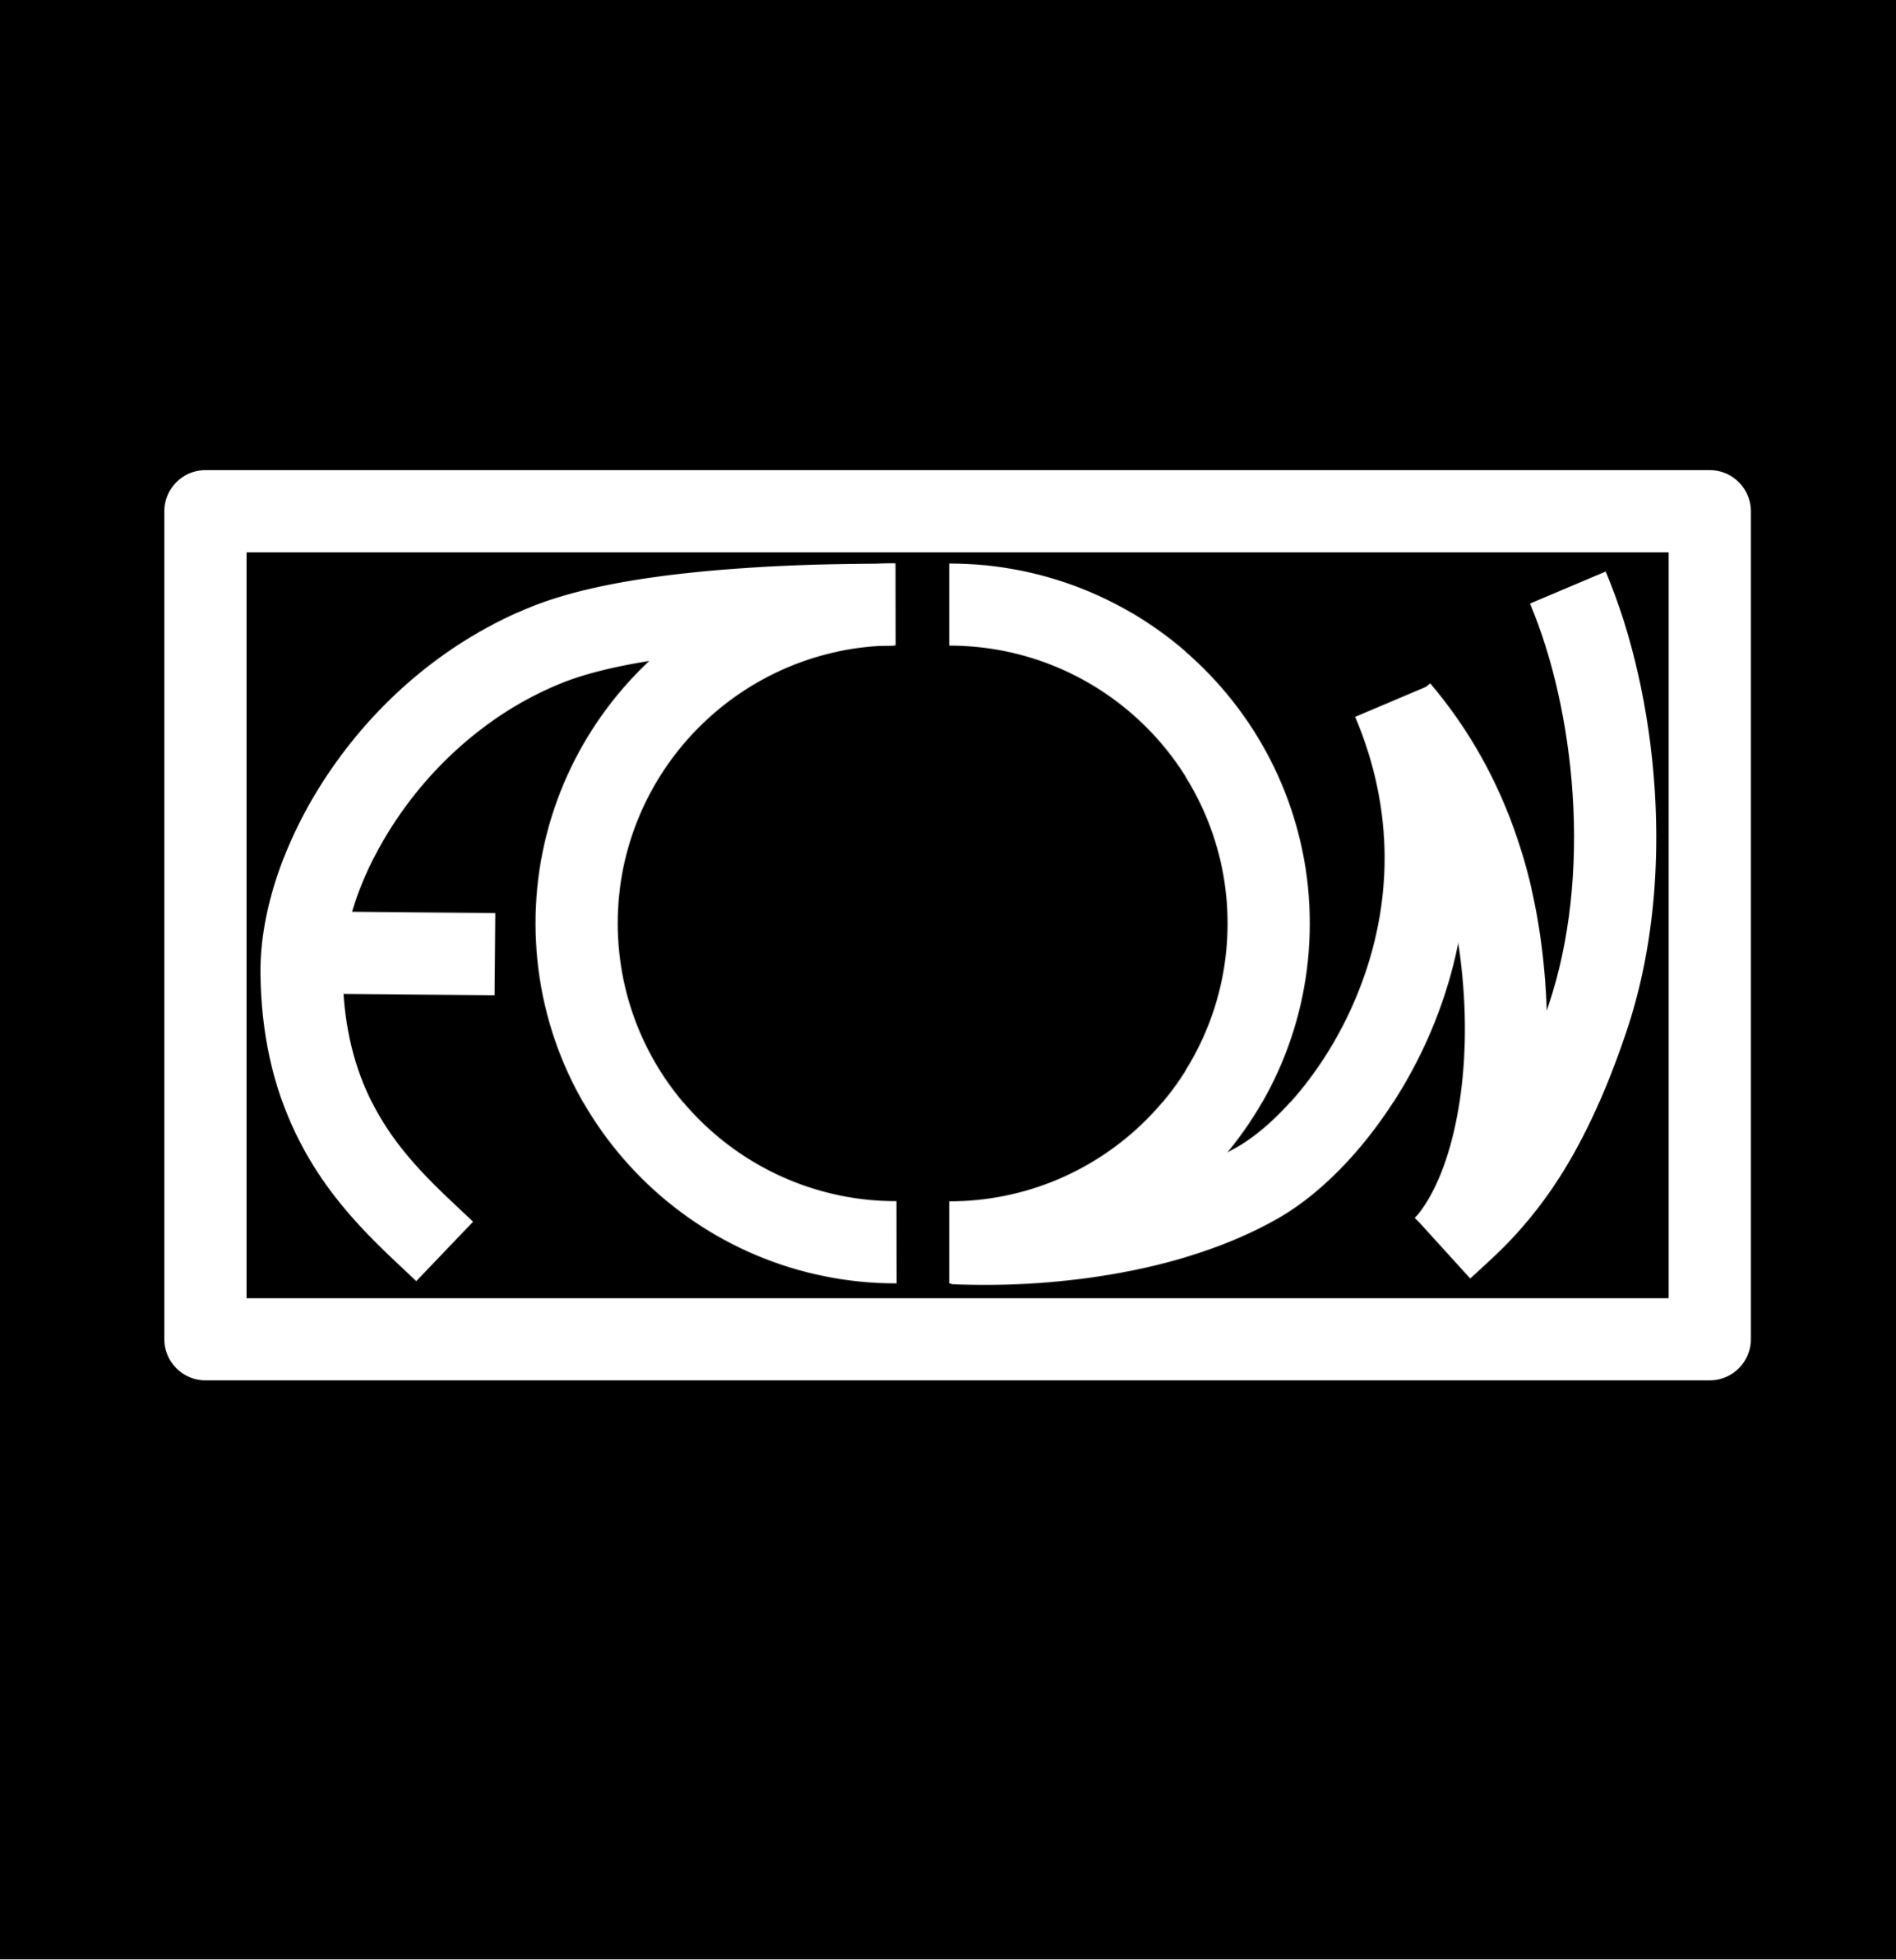 an illustrated logo in the shape of a camera with the letters A W